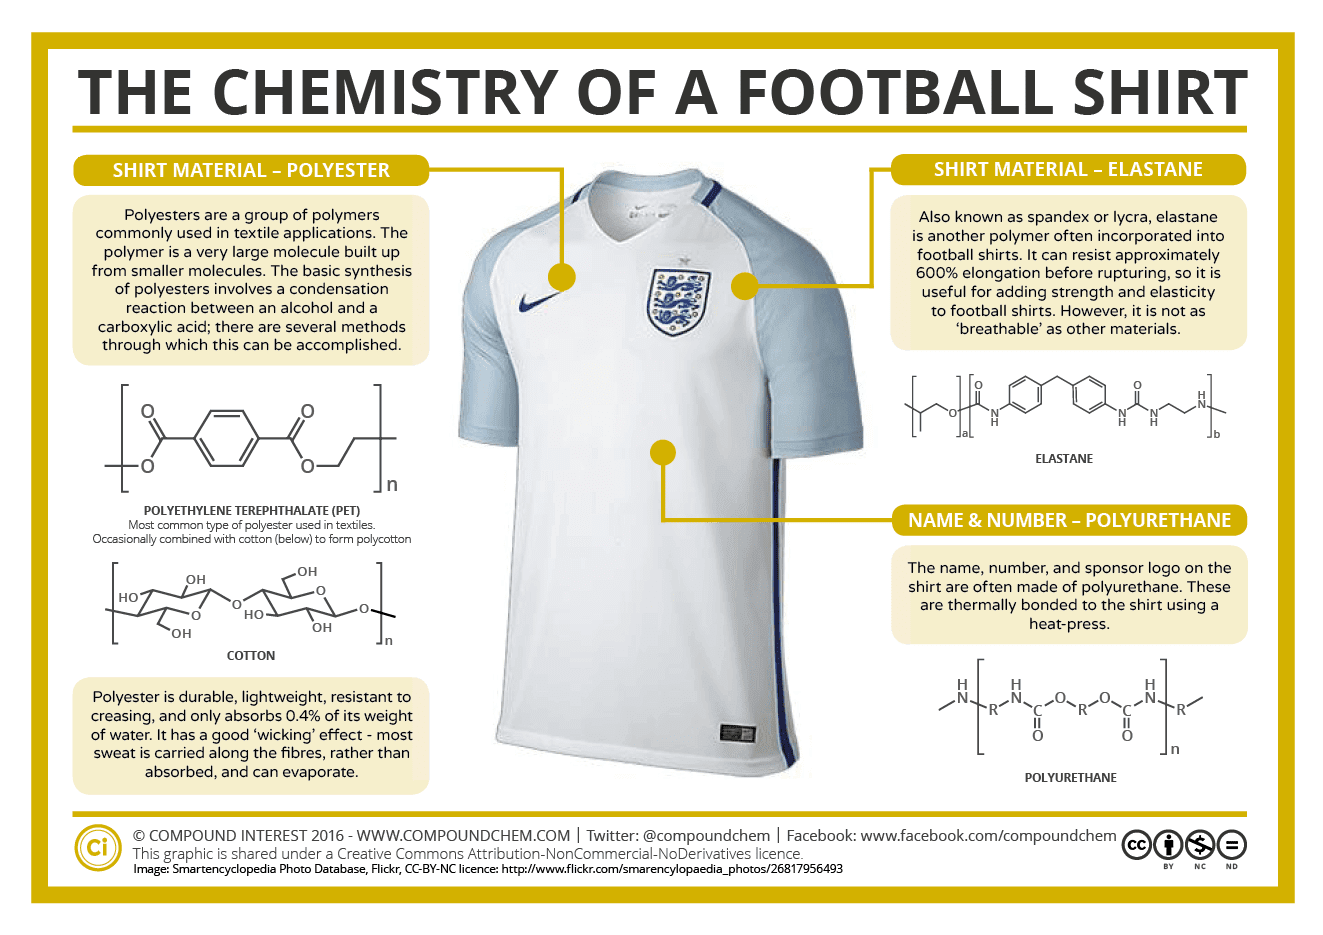 http://www.compoundchem.com/wp-content/uploads/2016/06/Everyday-Chemistry-The-Chemistry-of-a-Football-Shirt-Euro-2016.png